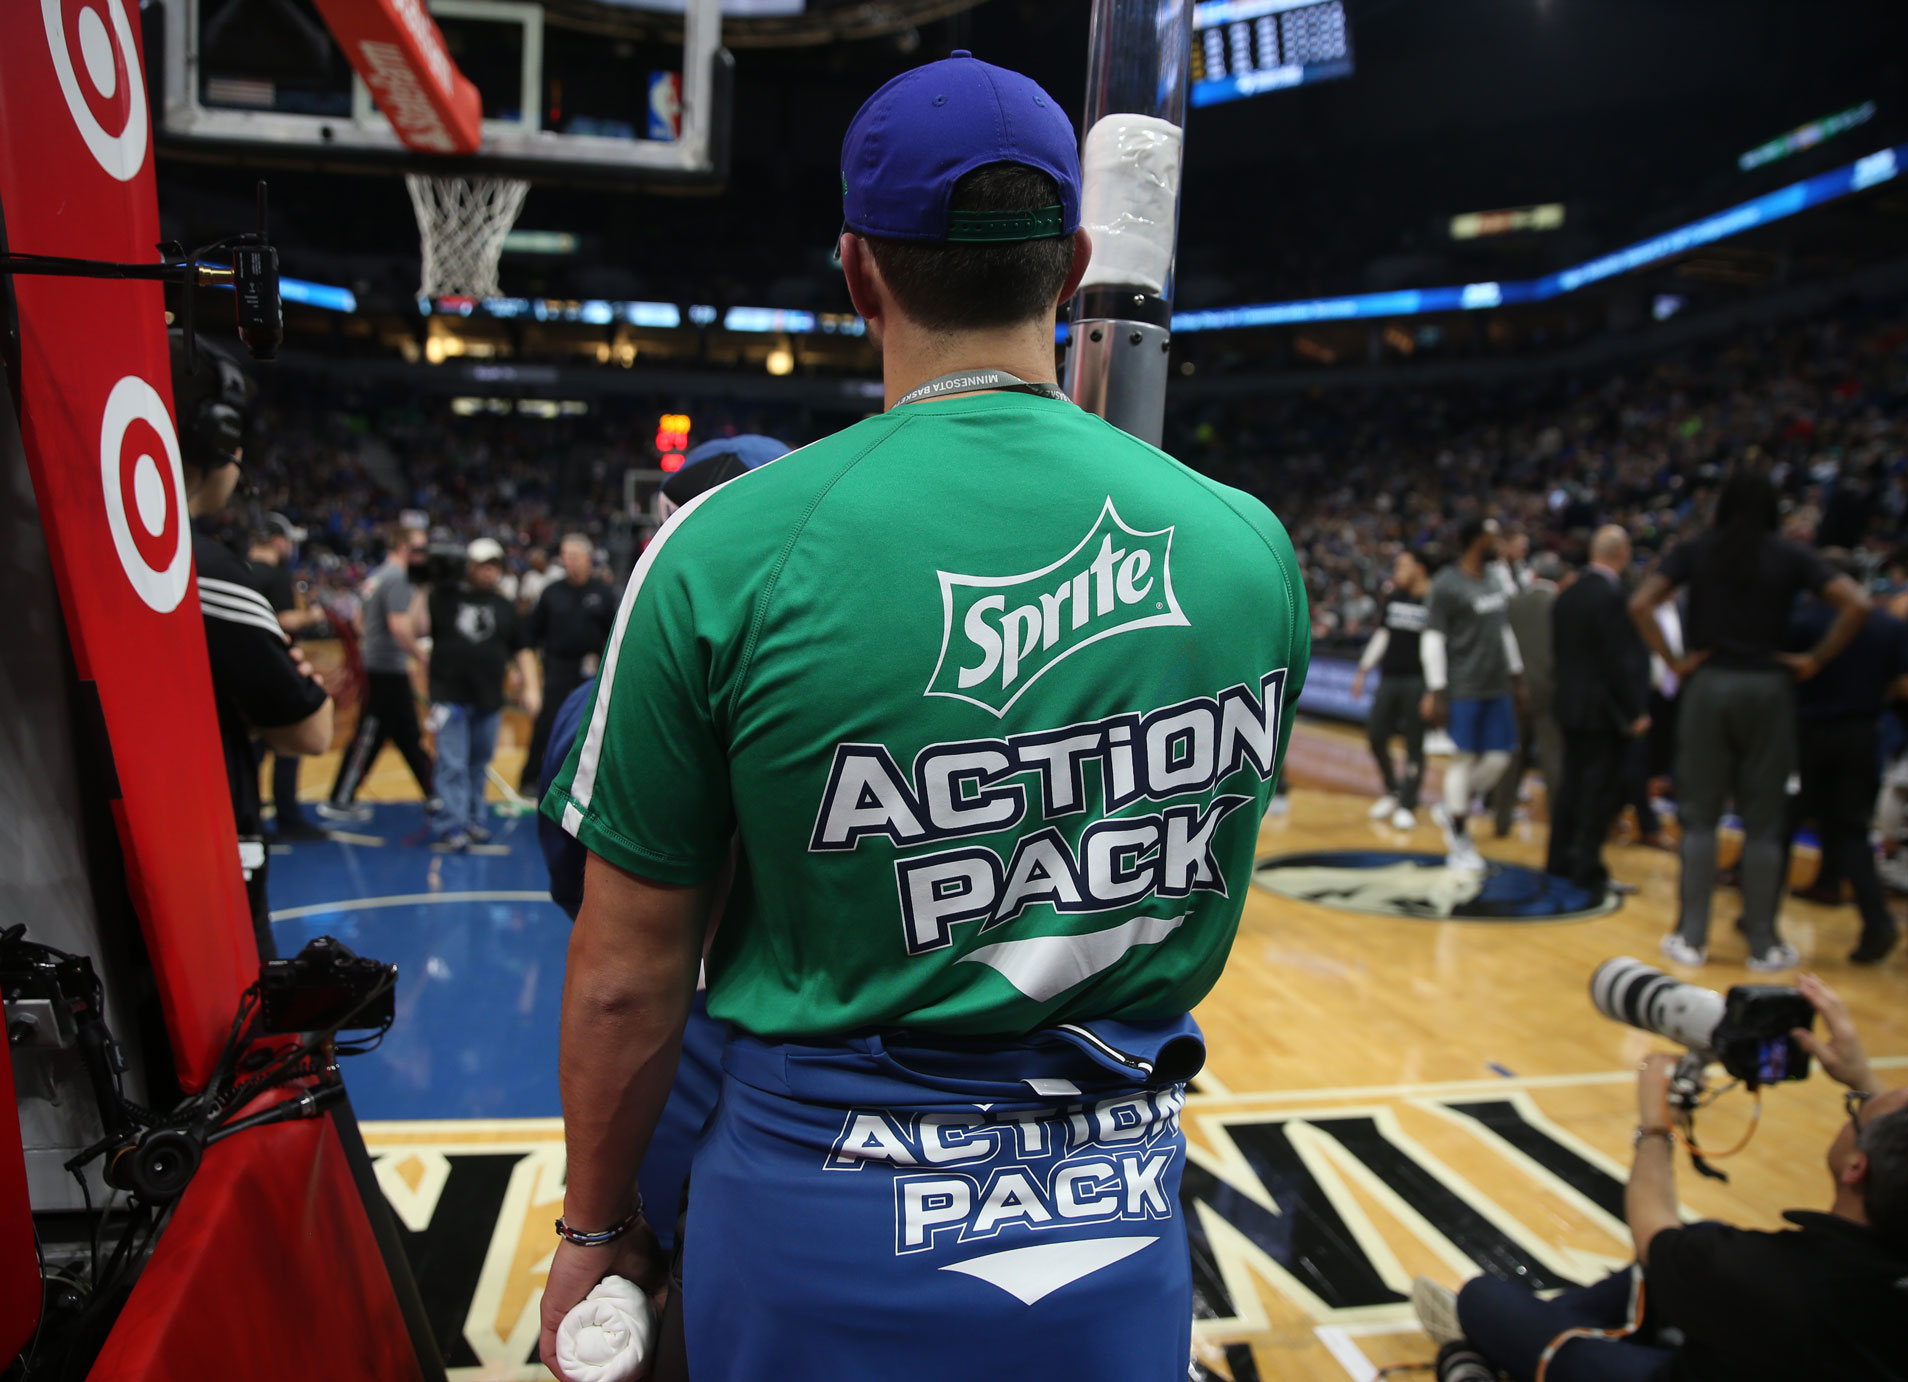 Sprite Action Pack